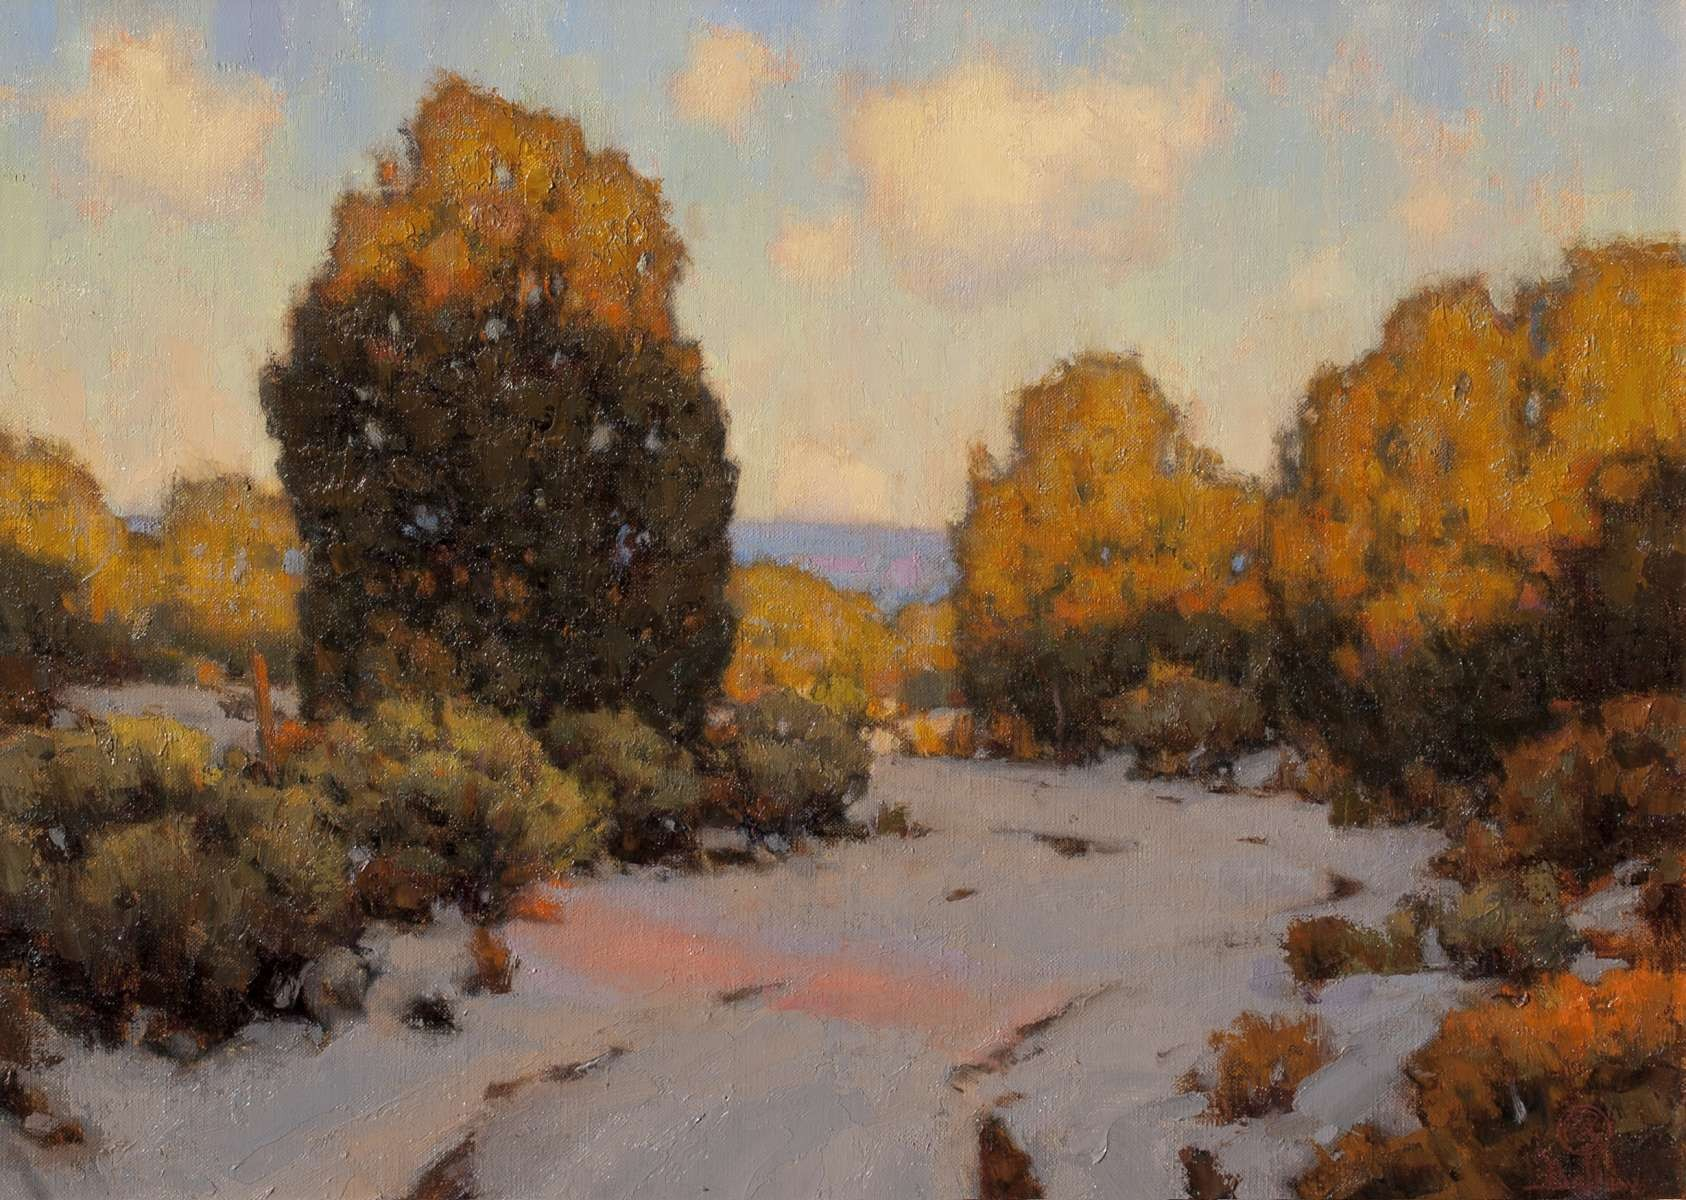 Winter Evening Shadows by David Ballew